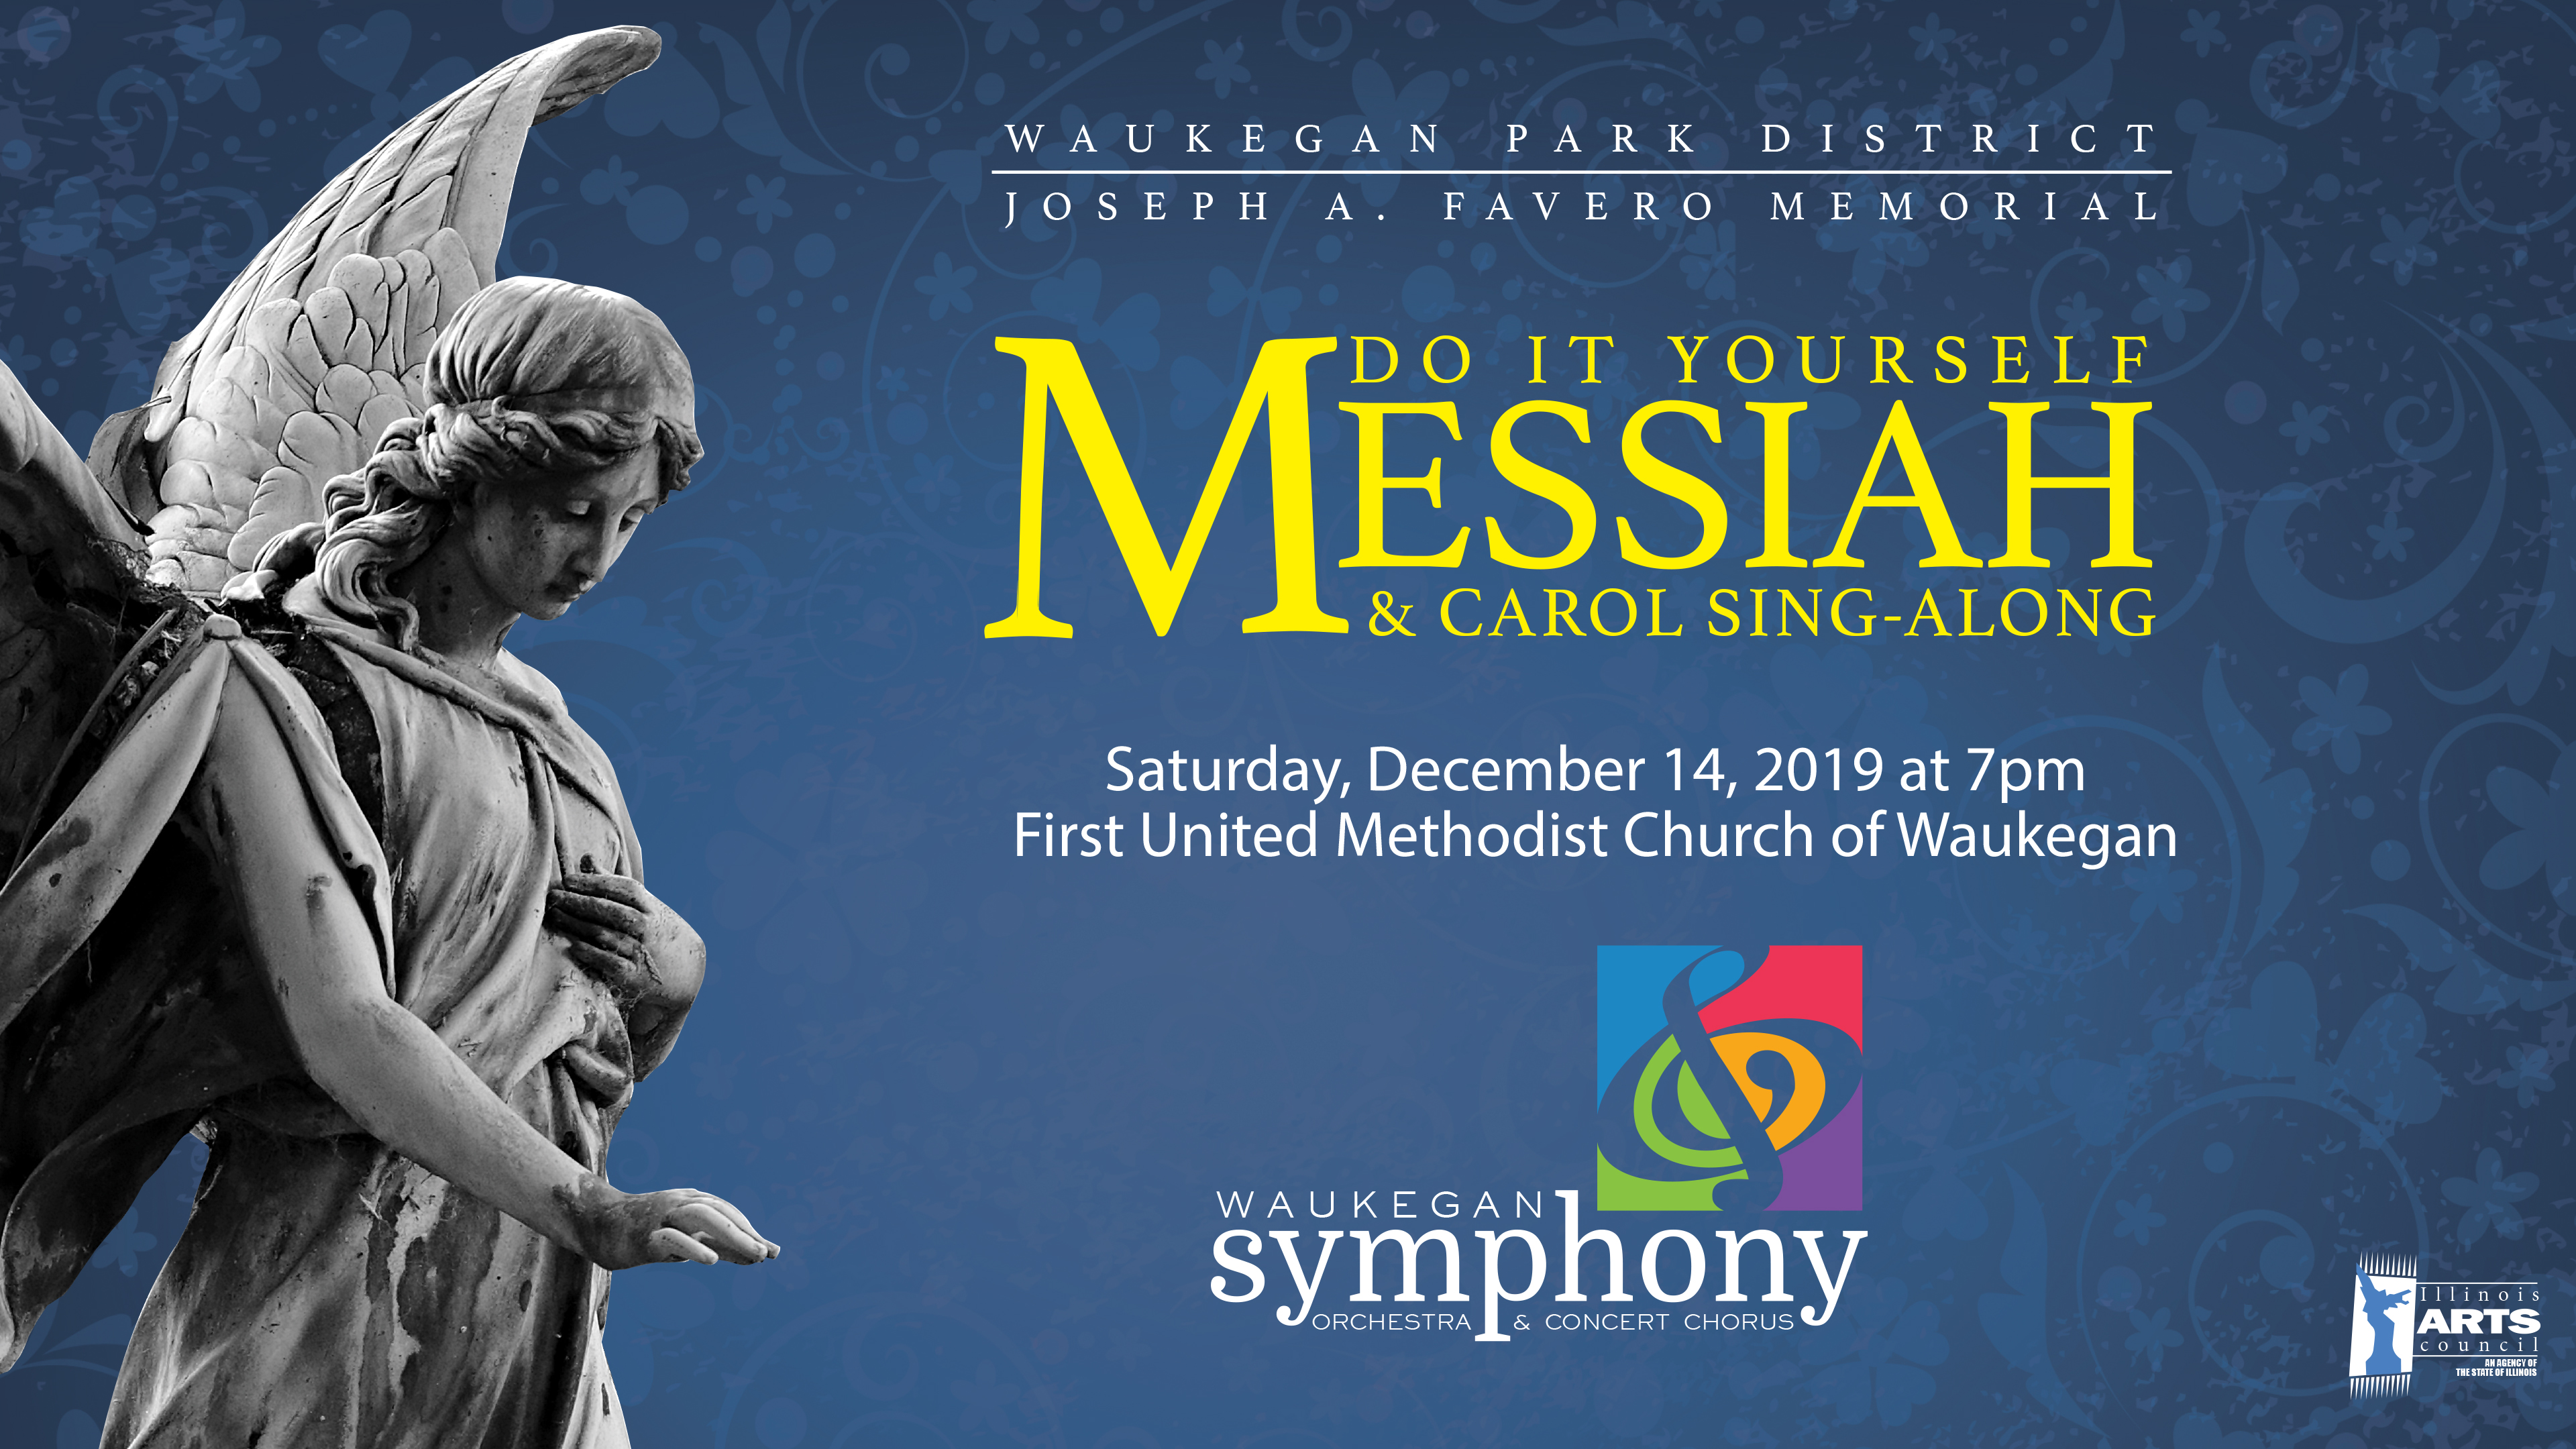 Do It Yourself Messiah & Carol Sing-Along in Waukegan